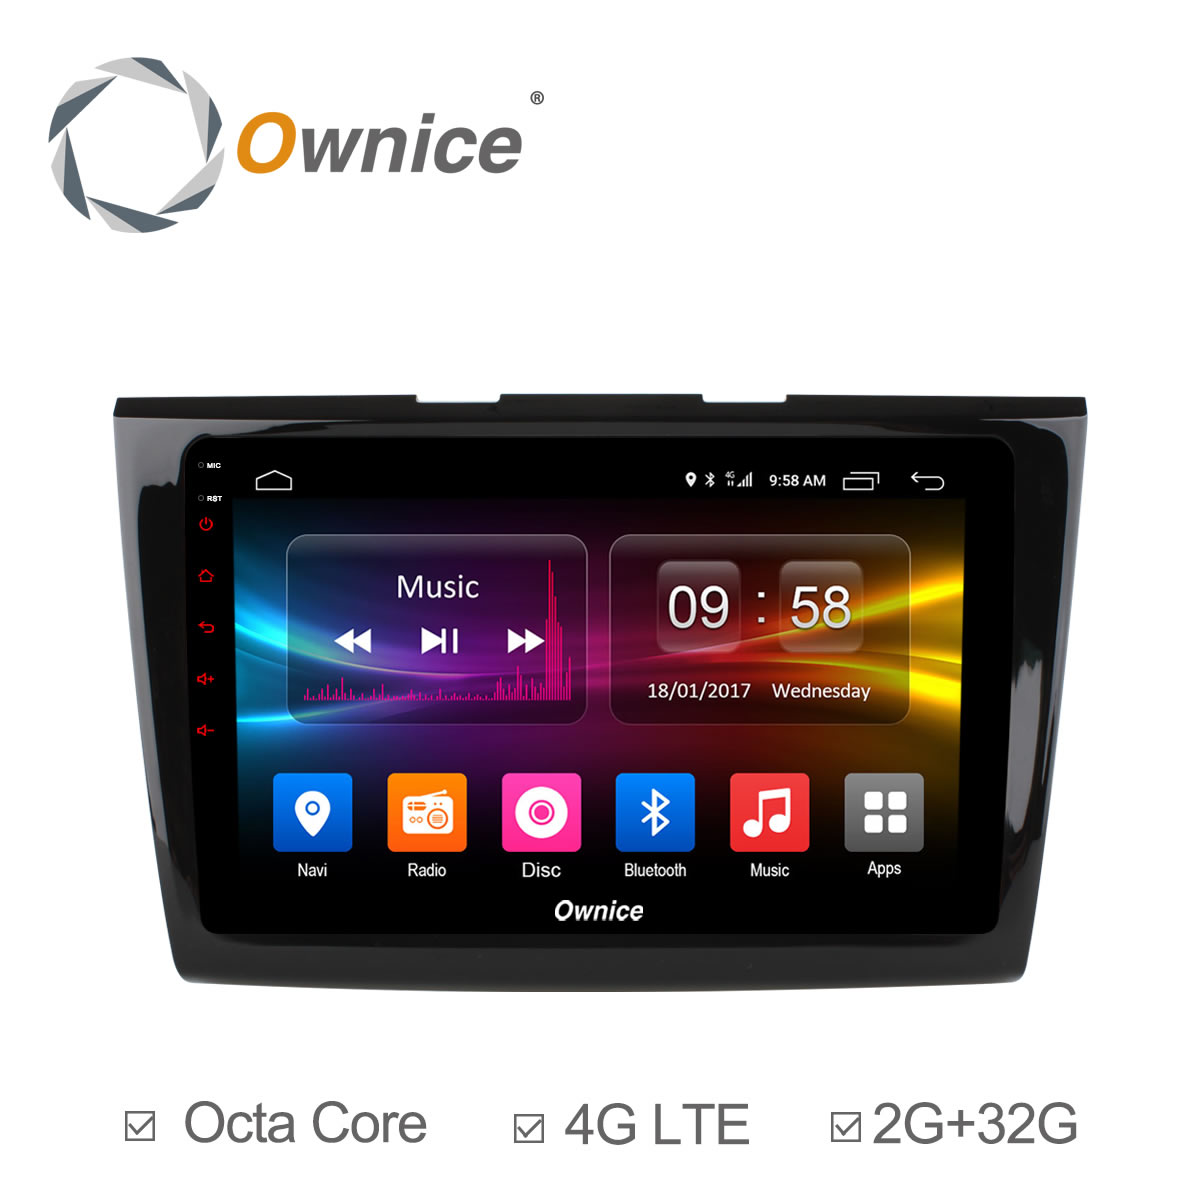 Ownice c500 octa 8 core android 6 0 32g rom car dvd gps navigation for ford taurus